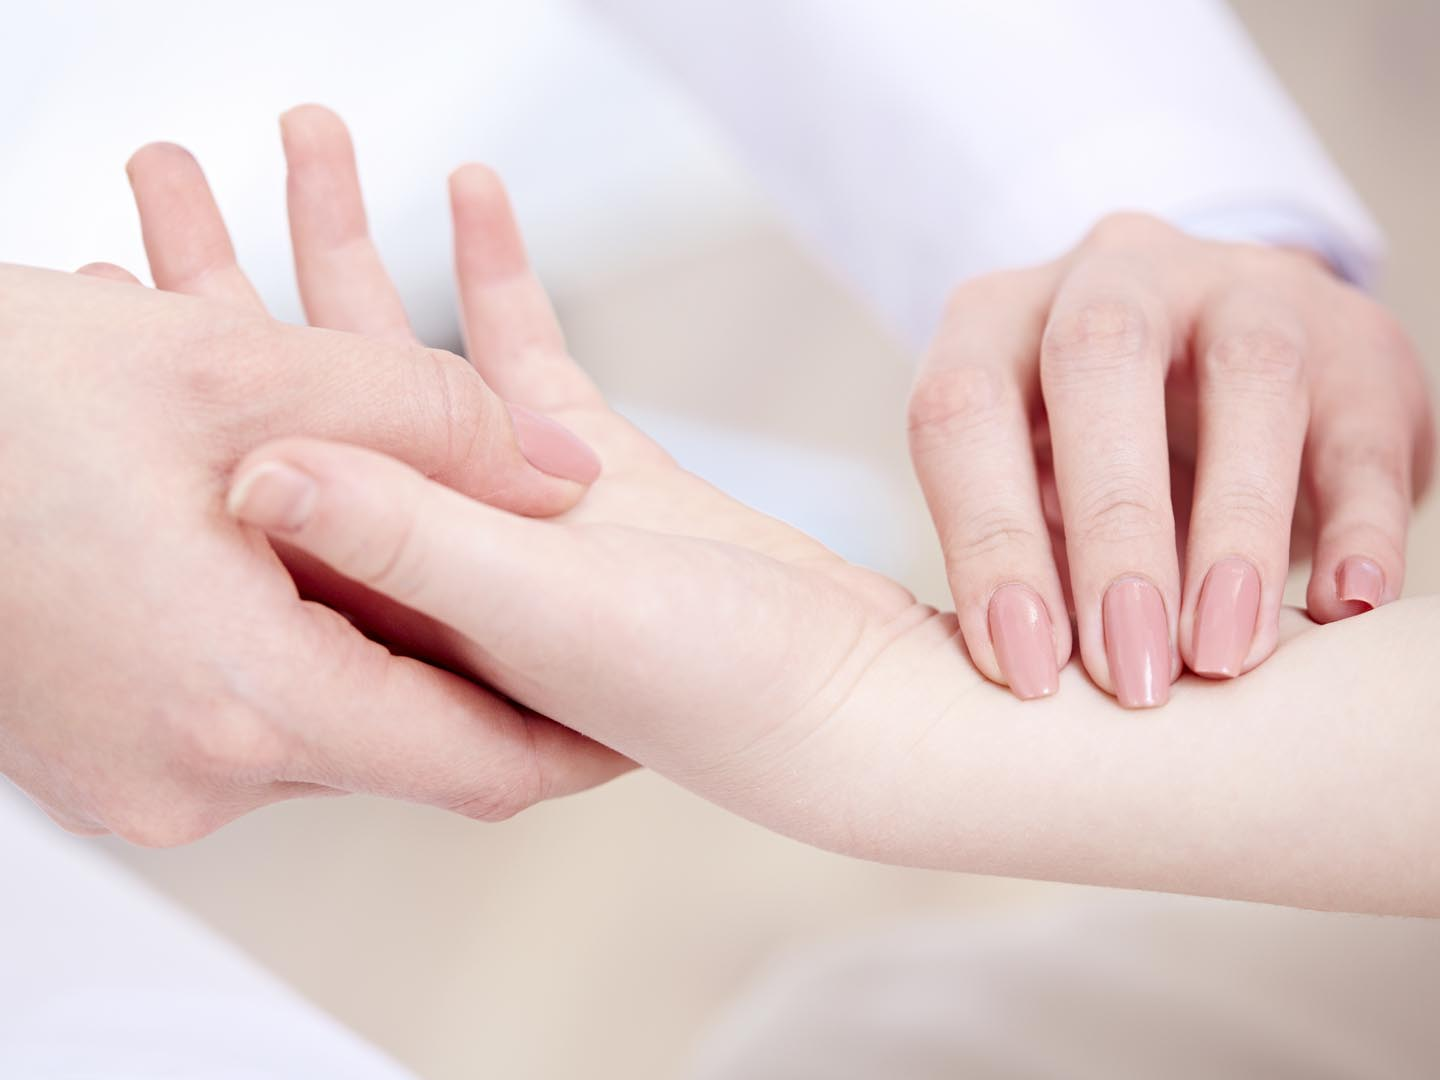 Painful Joints in Children? - Ask Dr. Weil